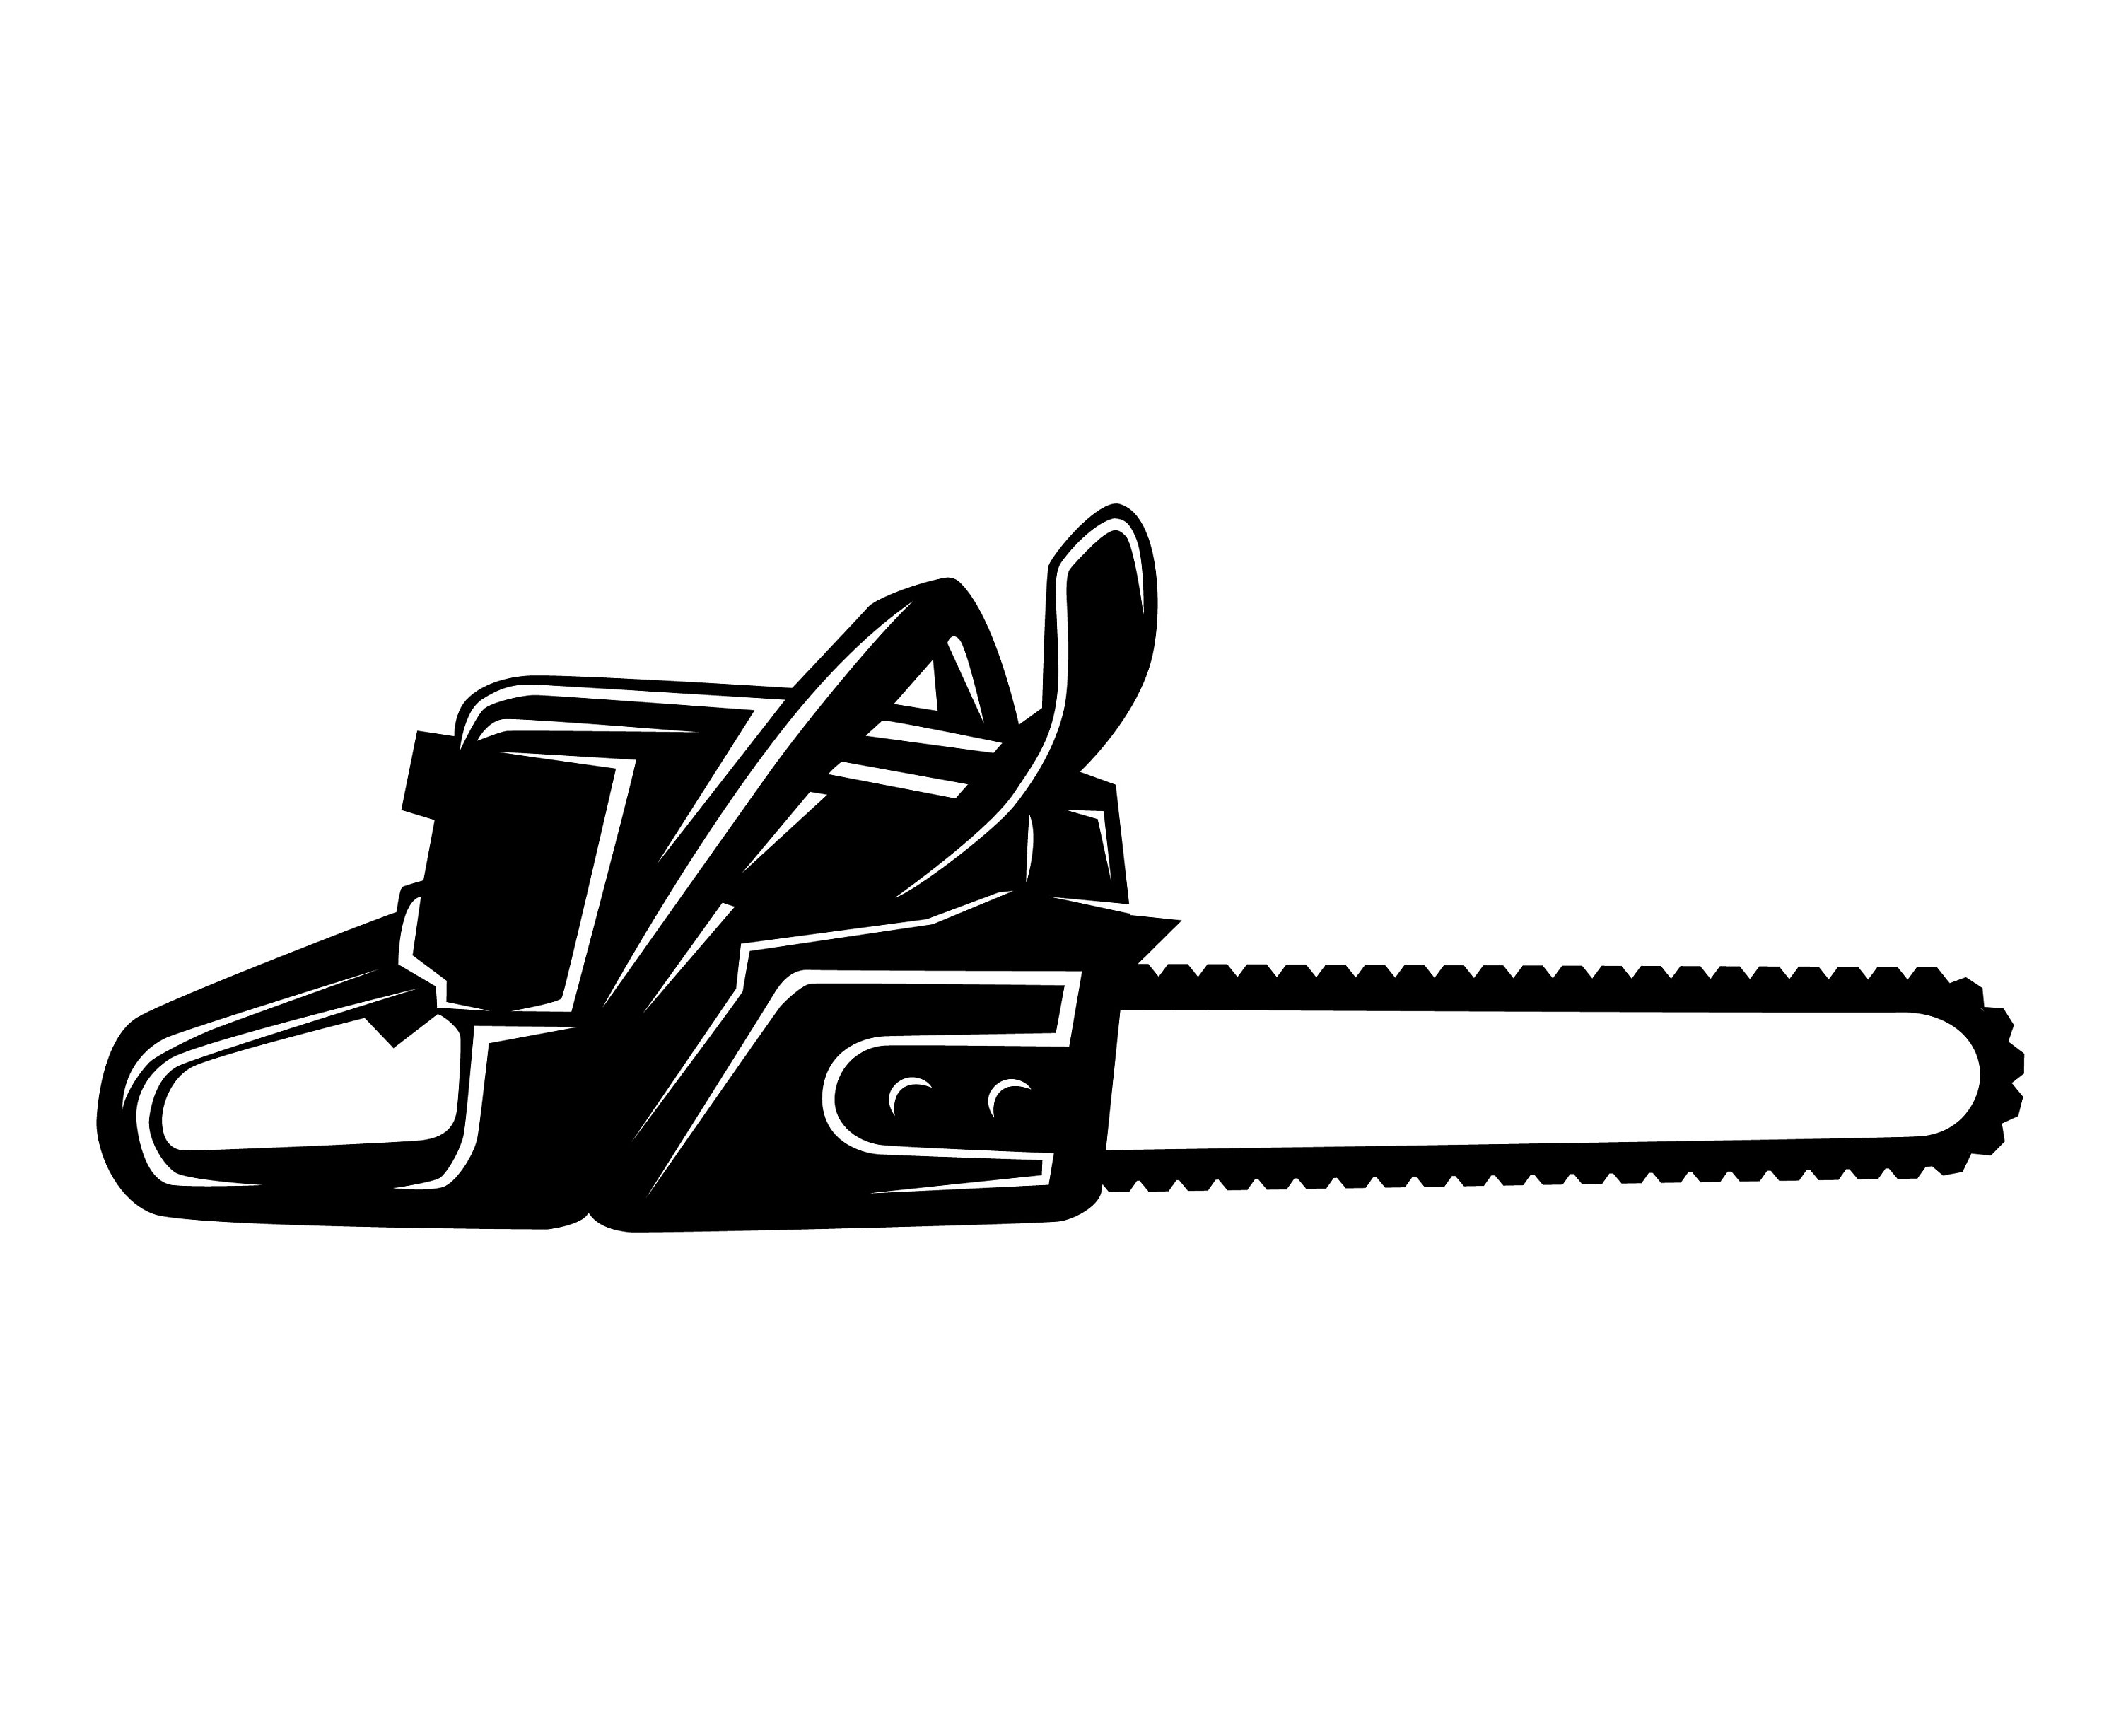 3000x2455 Chainsaw Svg, Chainsaw, Silhouette,svg,graphics,illustration